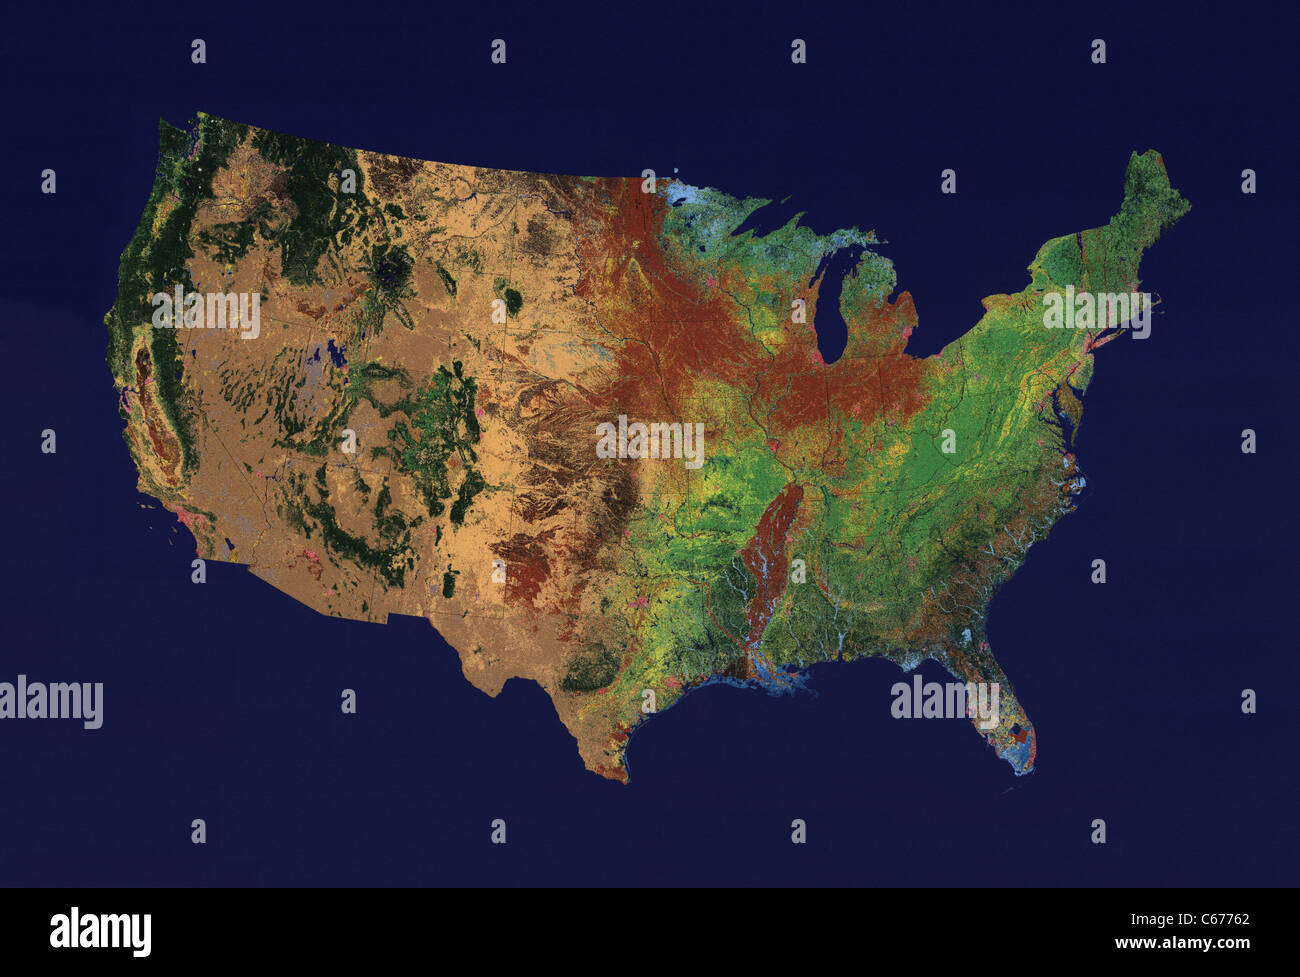 United States Map Topographic.Topographic Relief Map Of The 48 Contiguous States Of The United